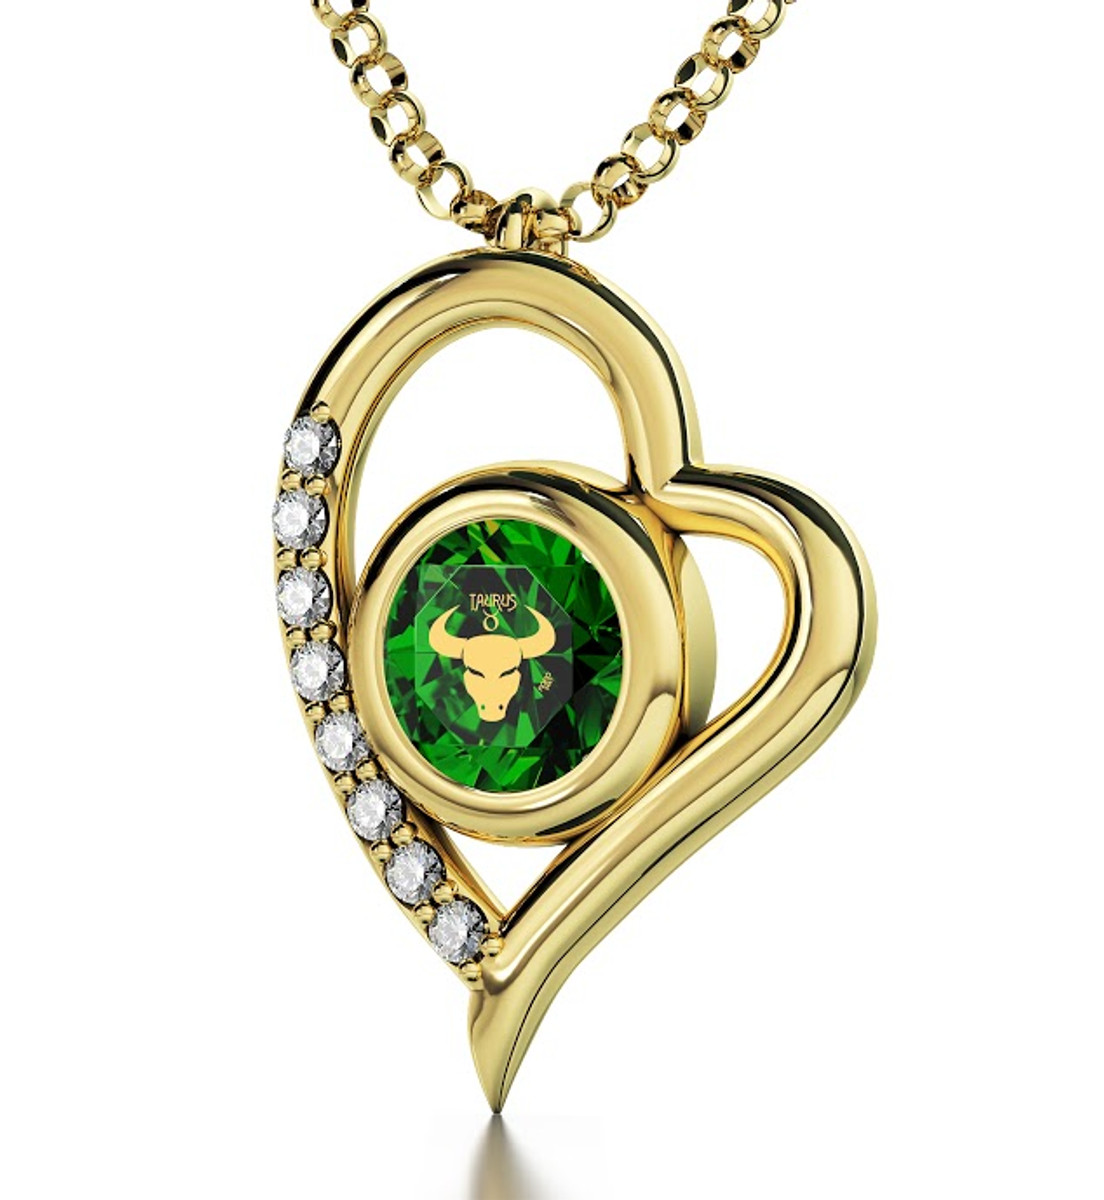 Green Inspirational Jewelry Gold Heart Taurus Necklace